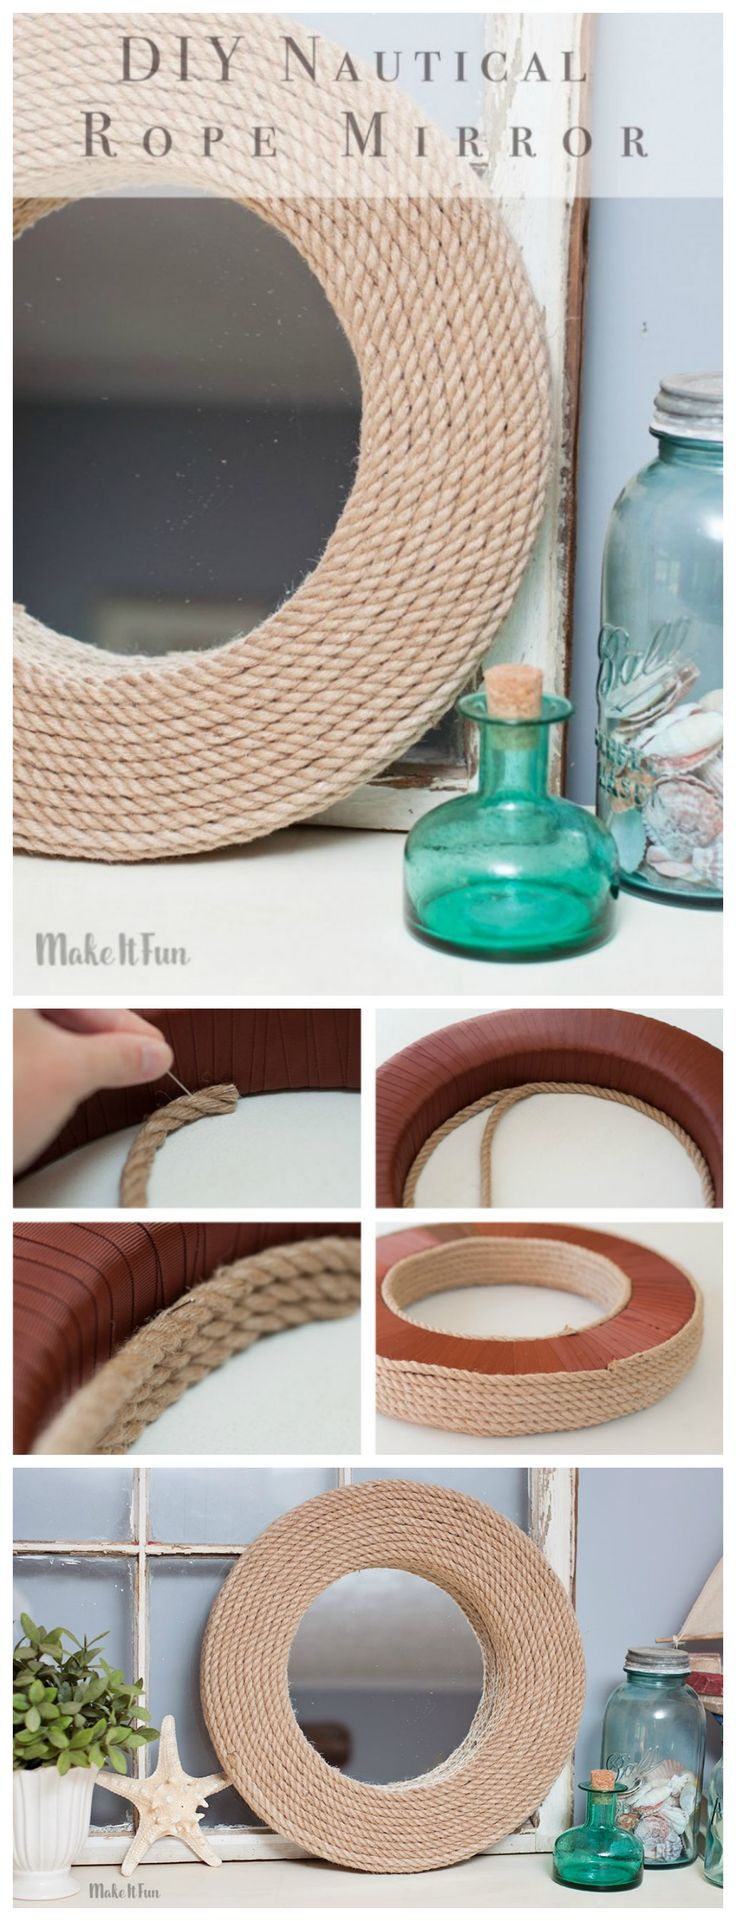 Nautical crafts to make - Create A Diy Custom Mirror For The House With A Nautical Decor Twist